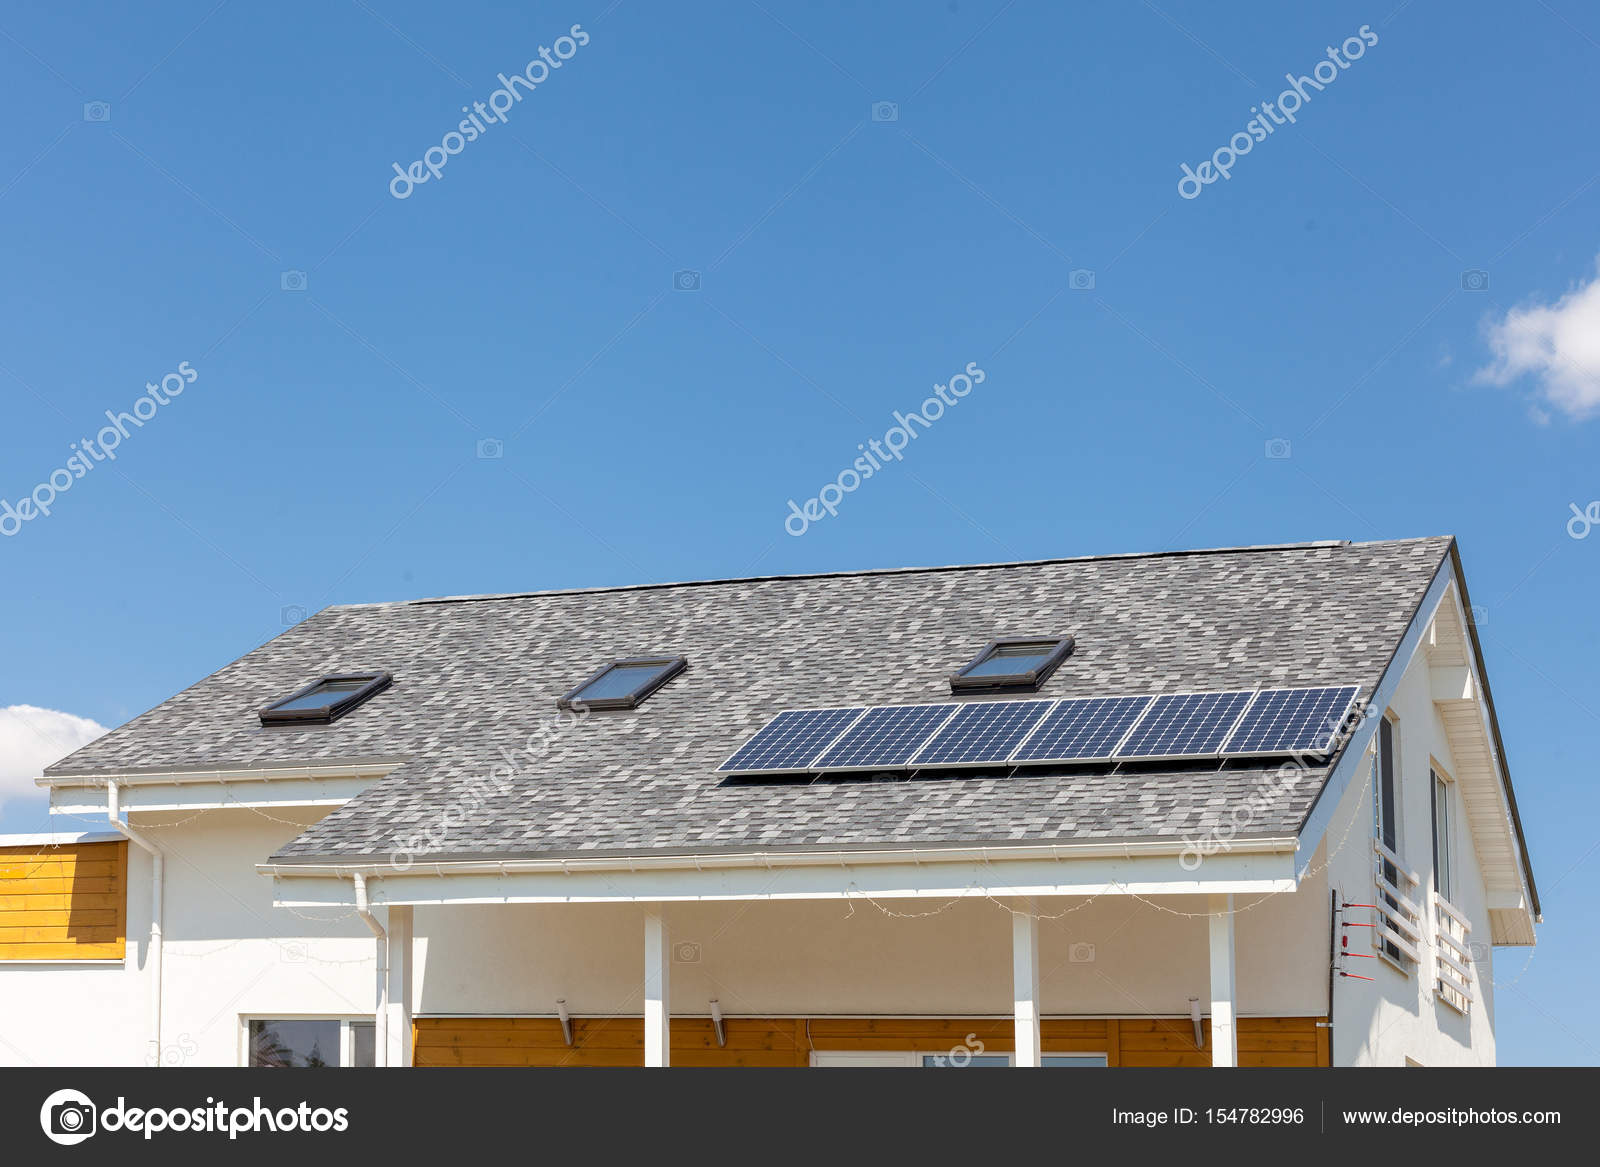 Solar Water Panel Heating On New House Roof With Skylights Against Blue  Sky. U2014 Stock